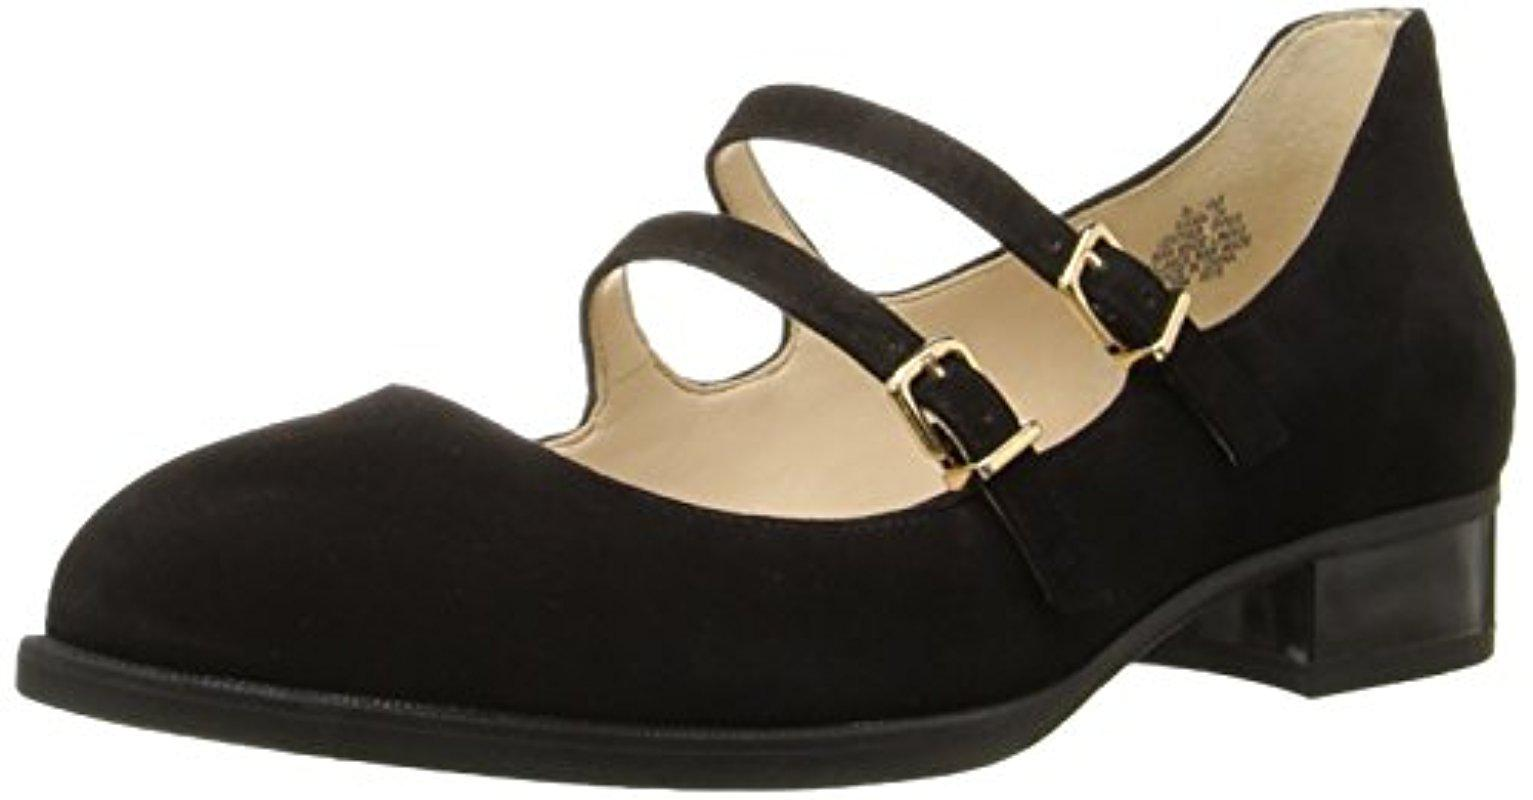 Nine West. Women's Black Nalita Suede Mary Jane Flat